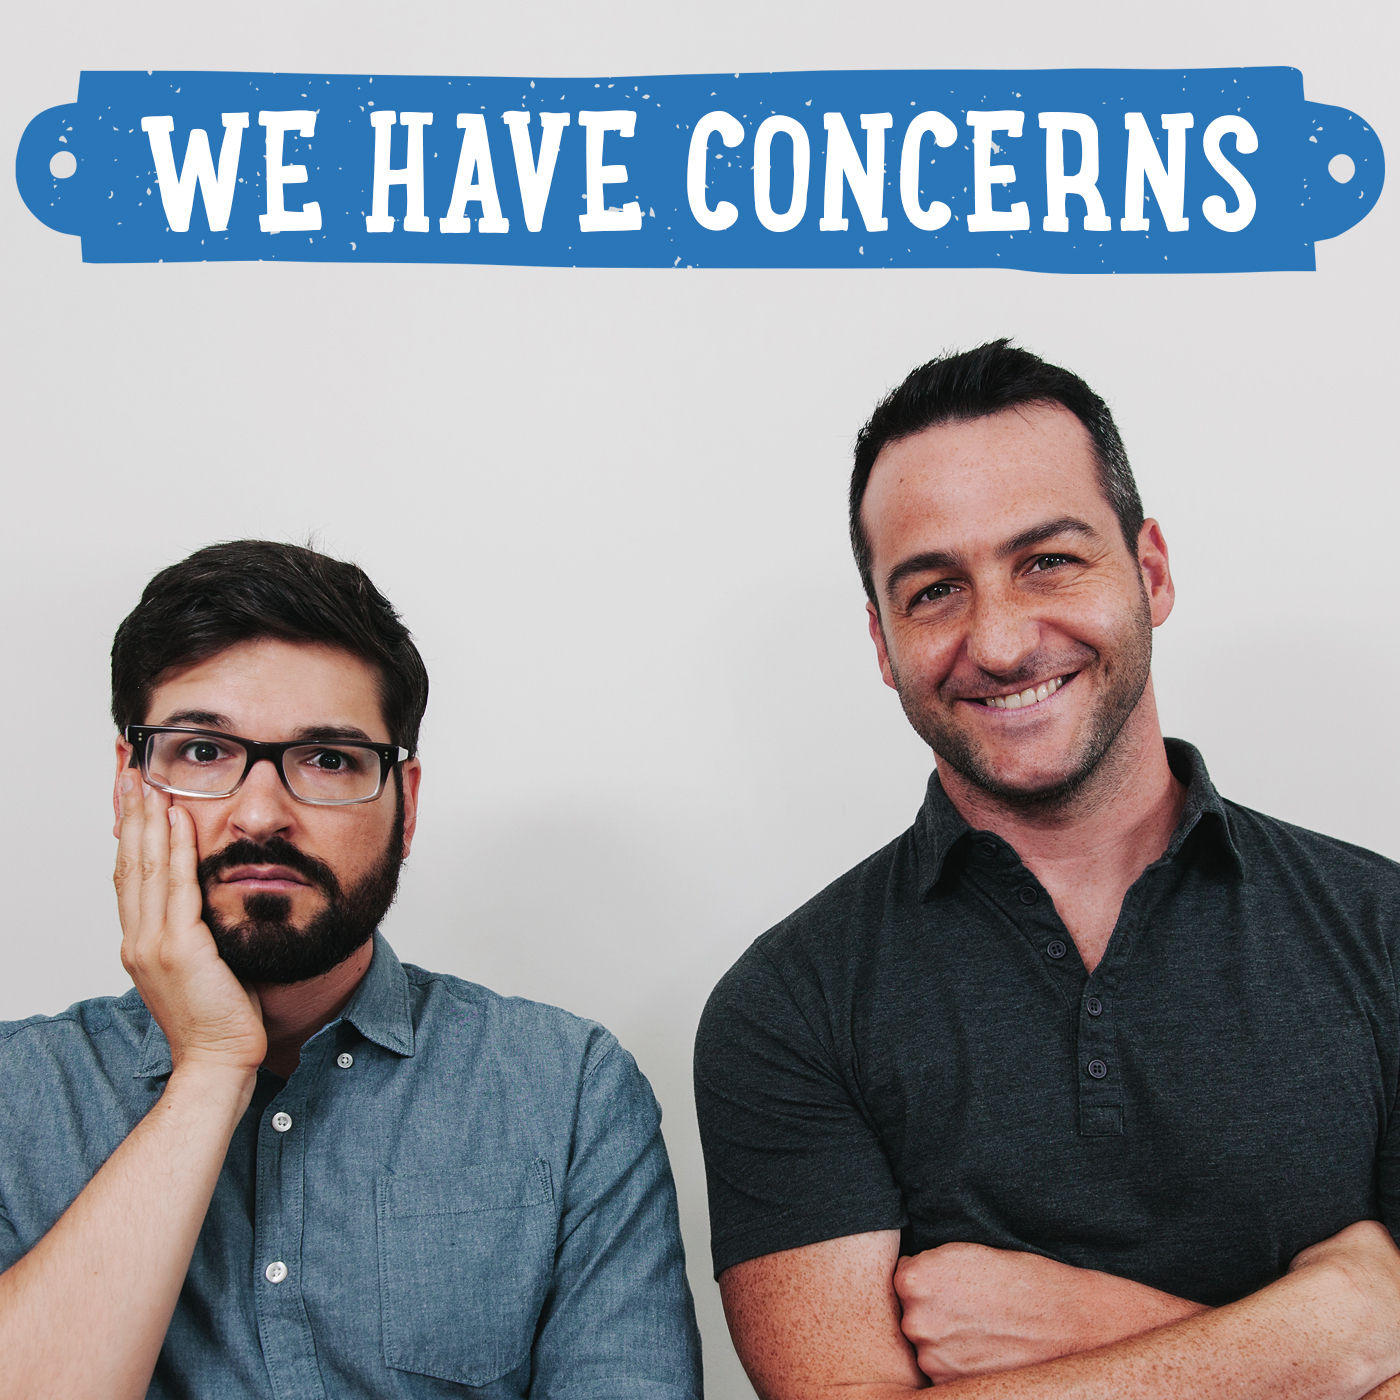 We Have concerns logo